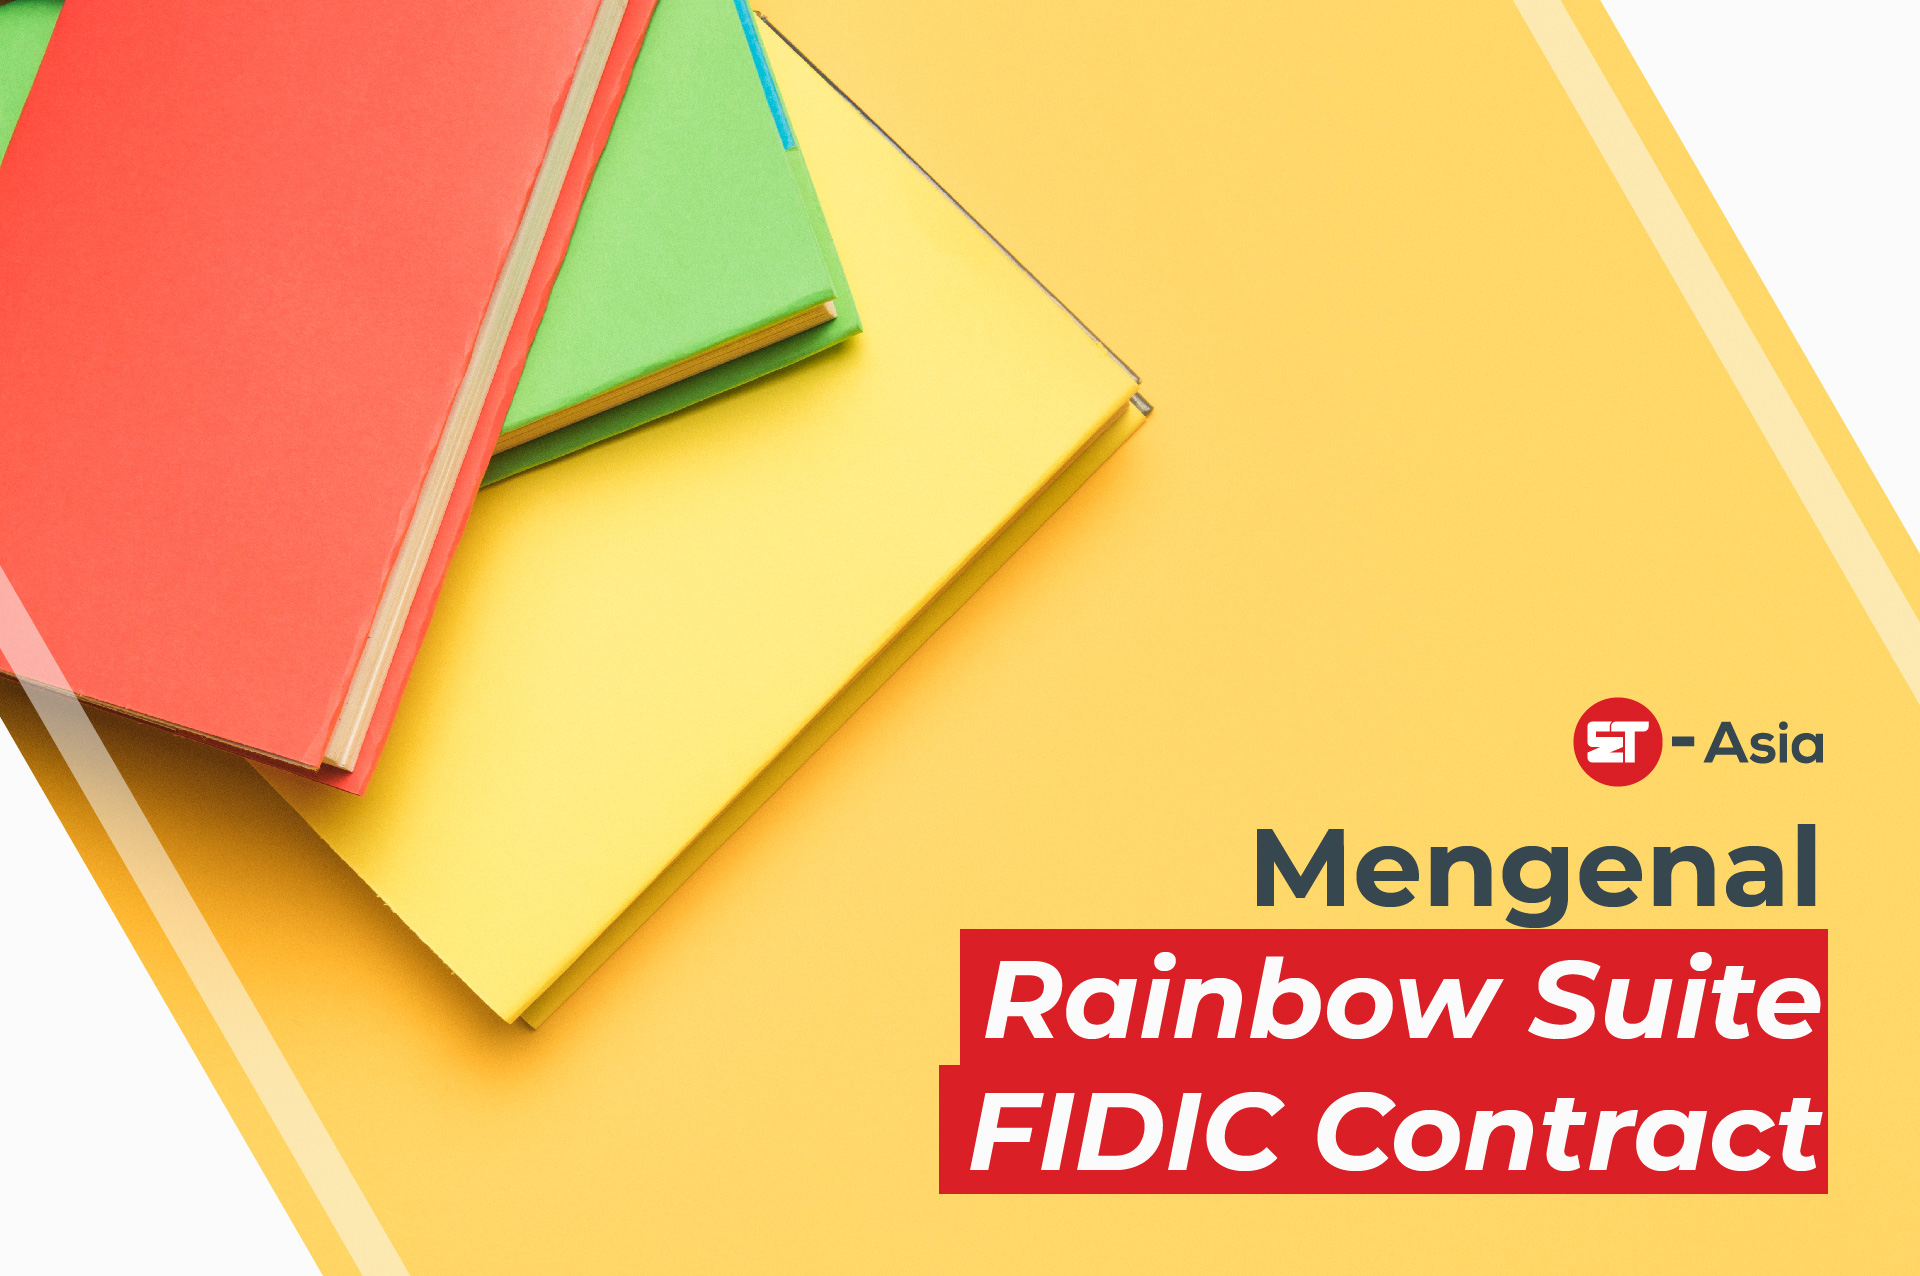 MENGENAL RAINBOW SUITE FIDIC CONTRACT